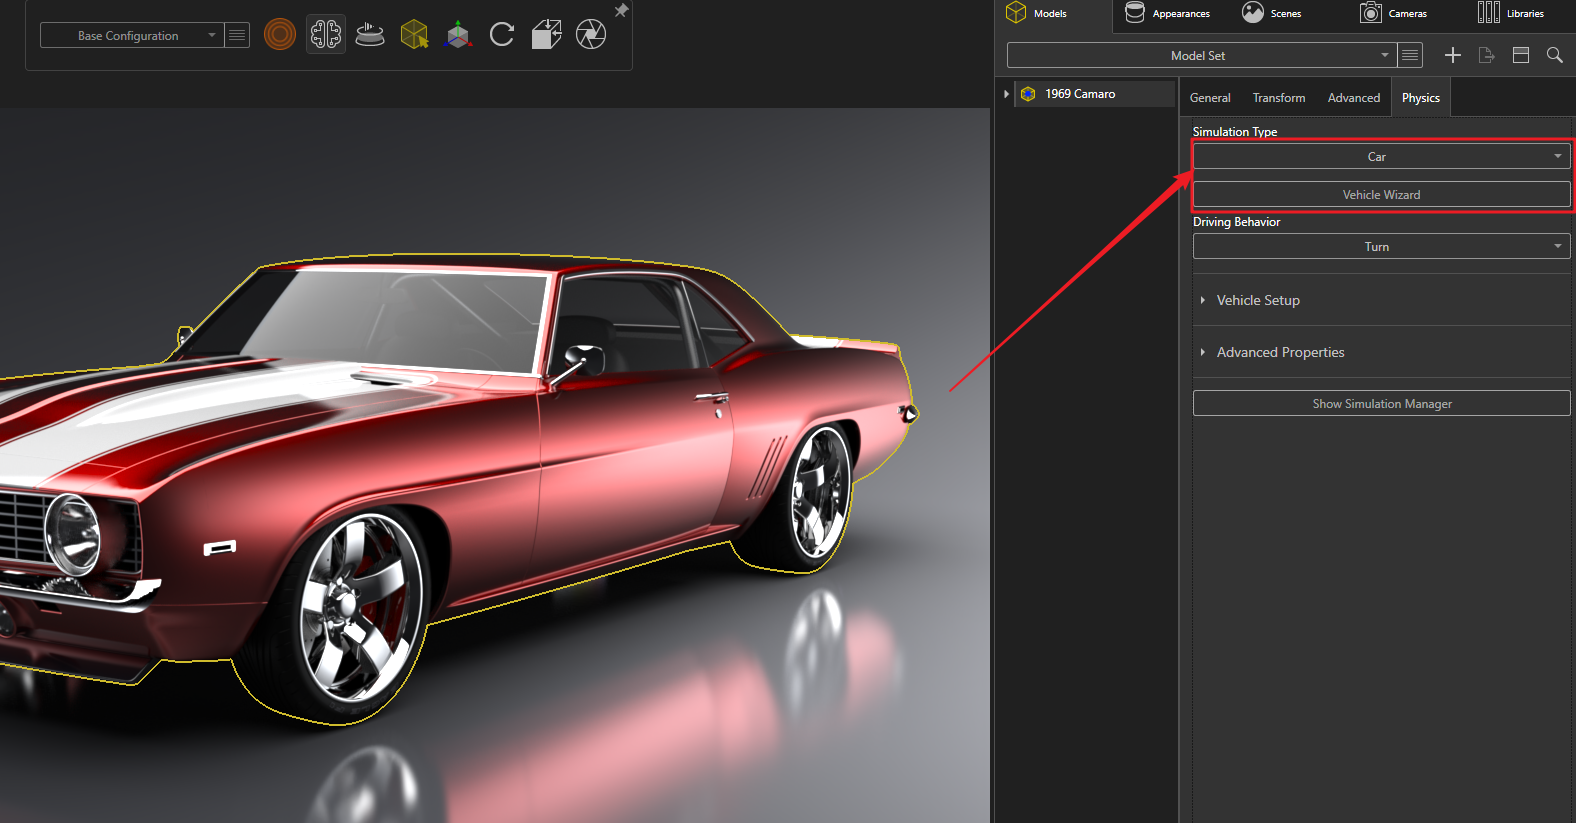 SOLIDWORKS VISUALIZE 2019 - Take you design for a test drive